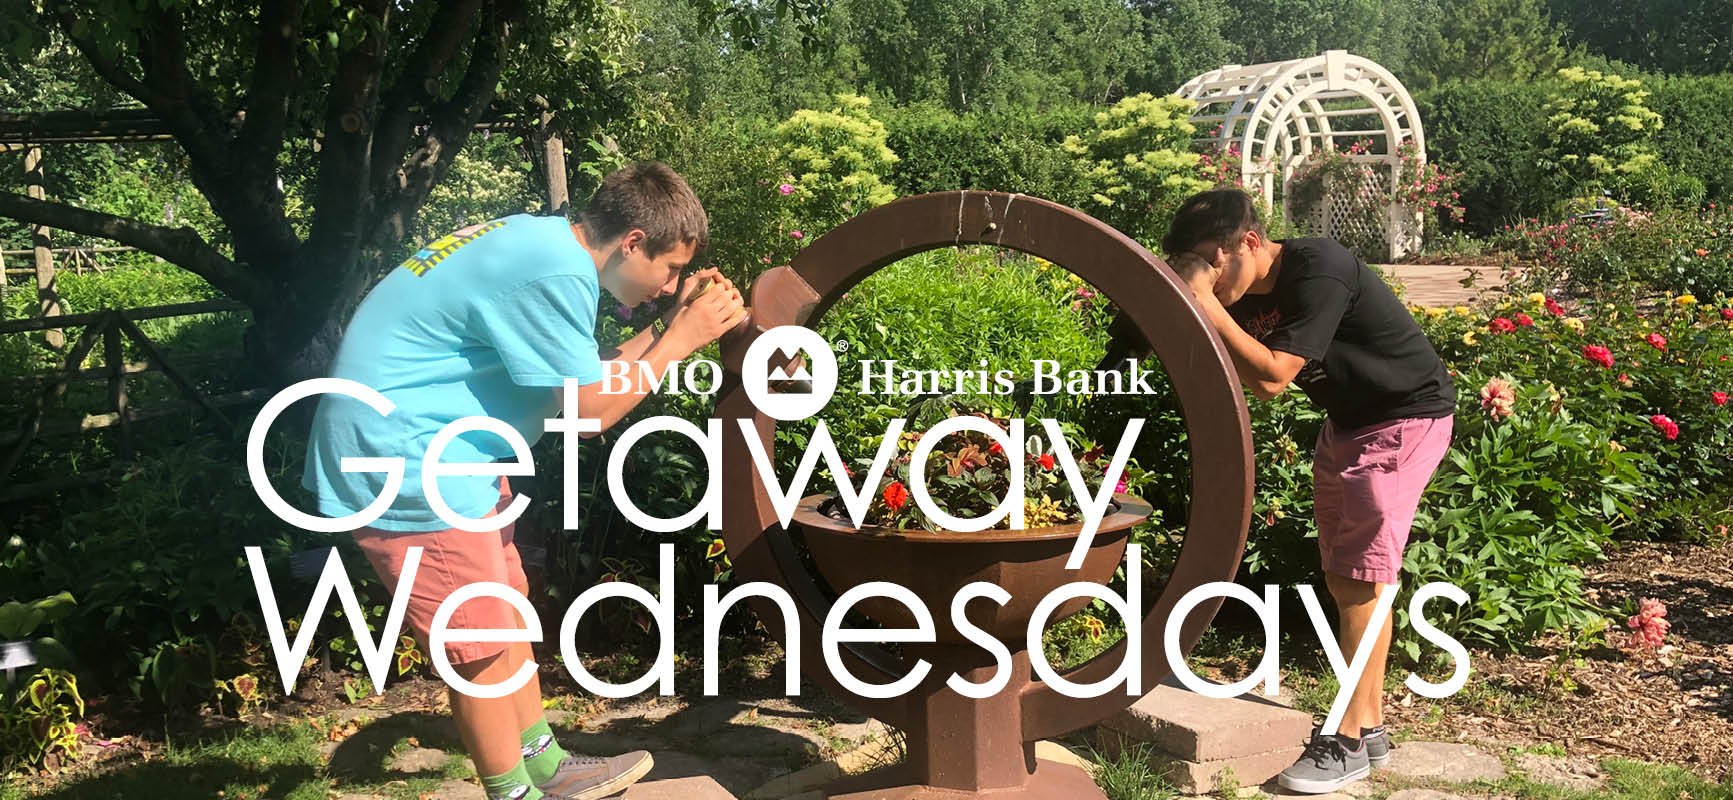 BMO Harris Bank Getaway Wednesdays